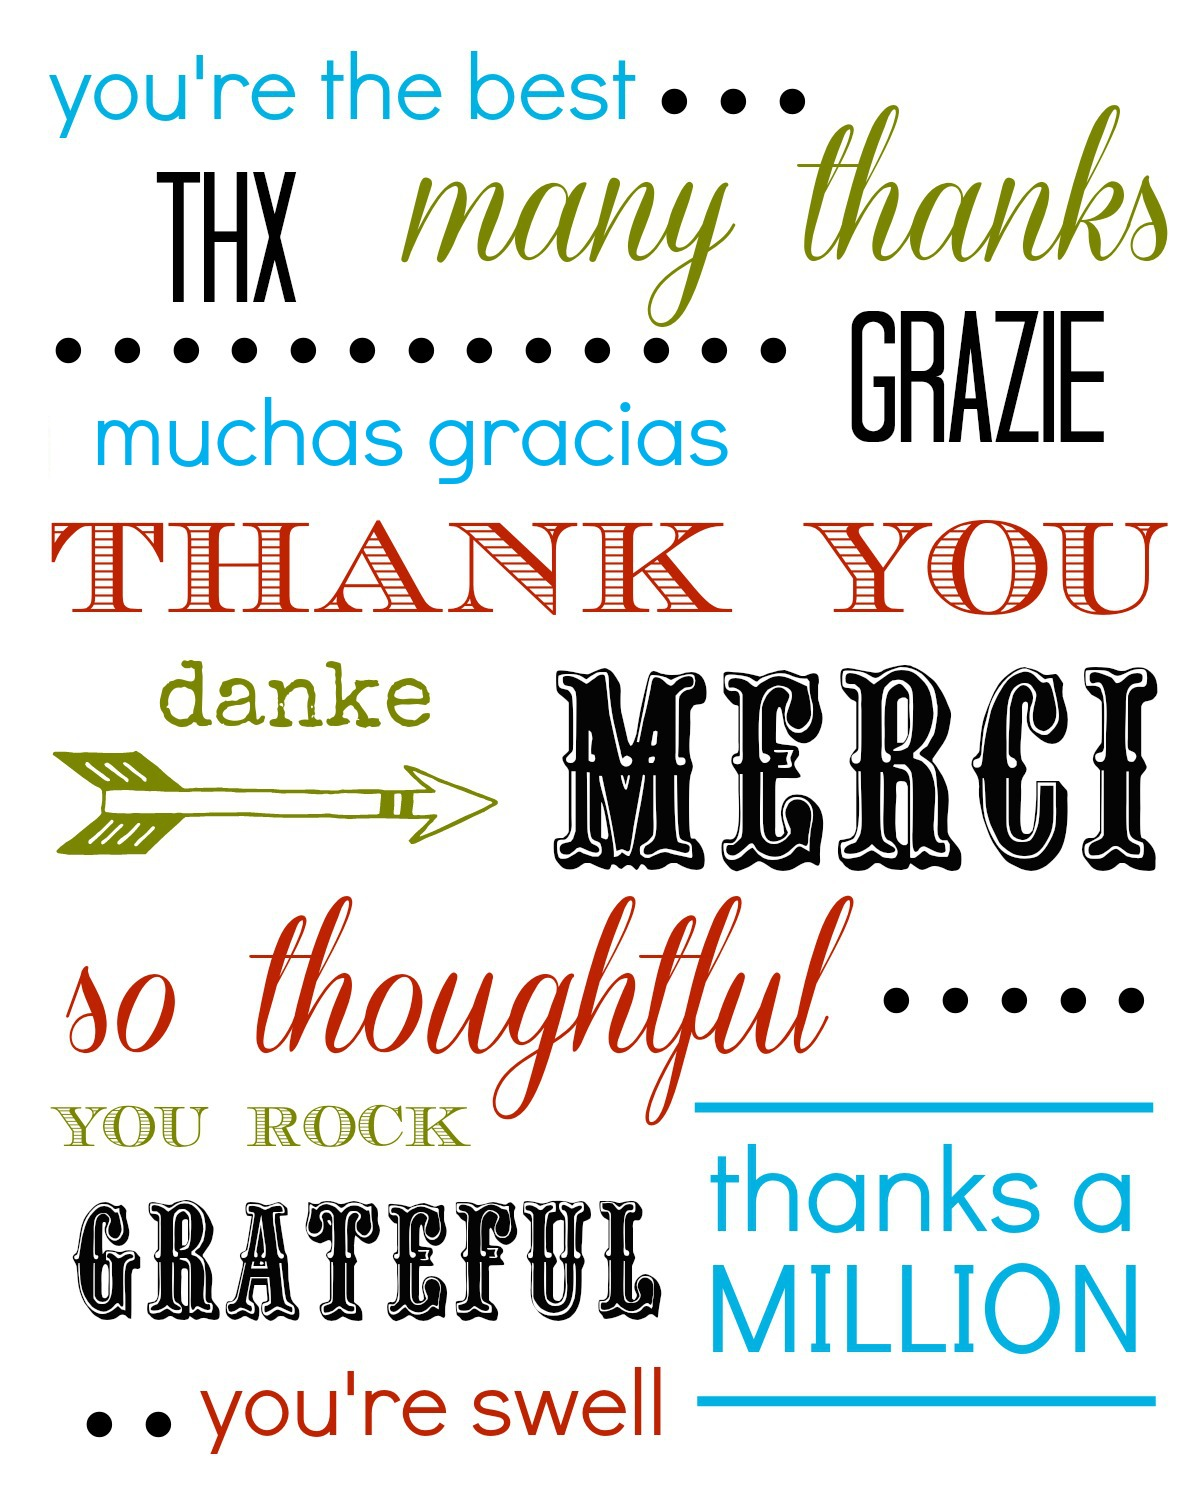 Thanks To My Husband Quotes: Thank You Husband Quotes. QuotesGram